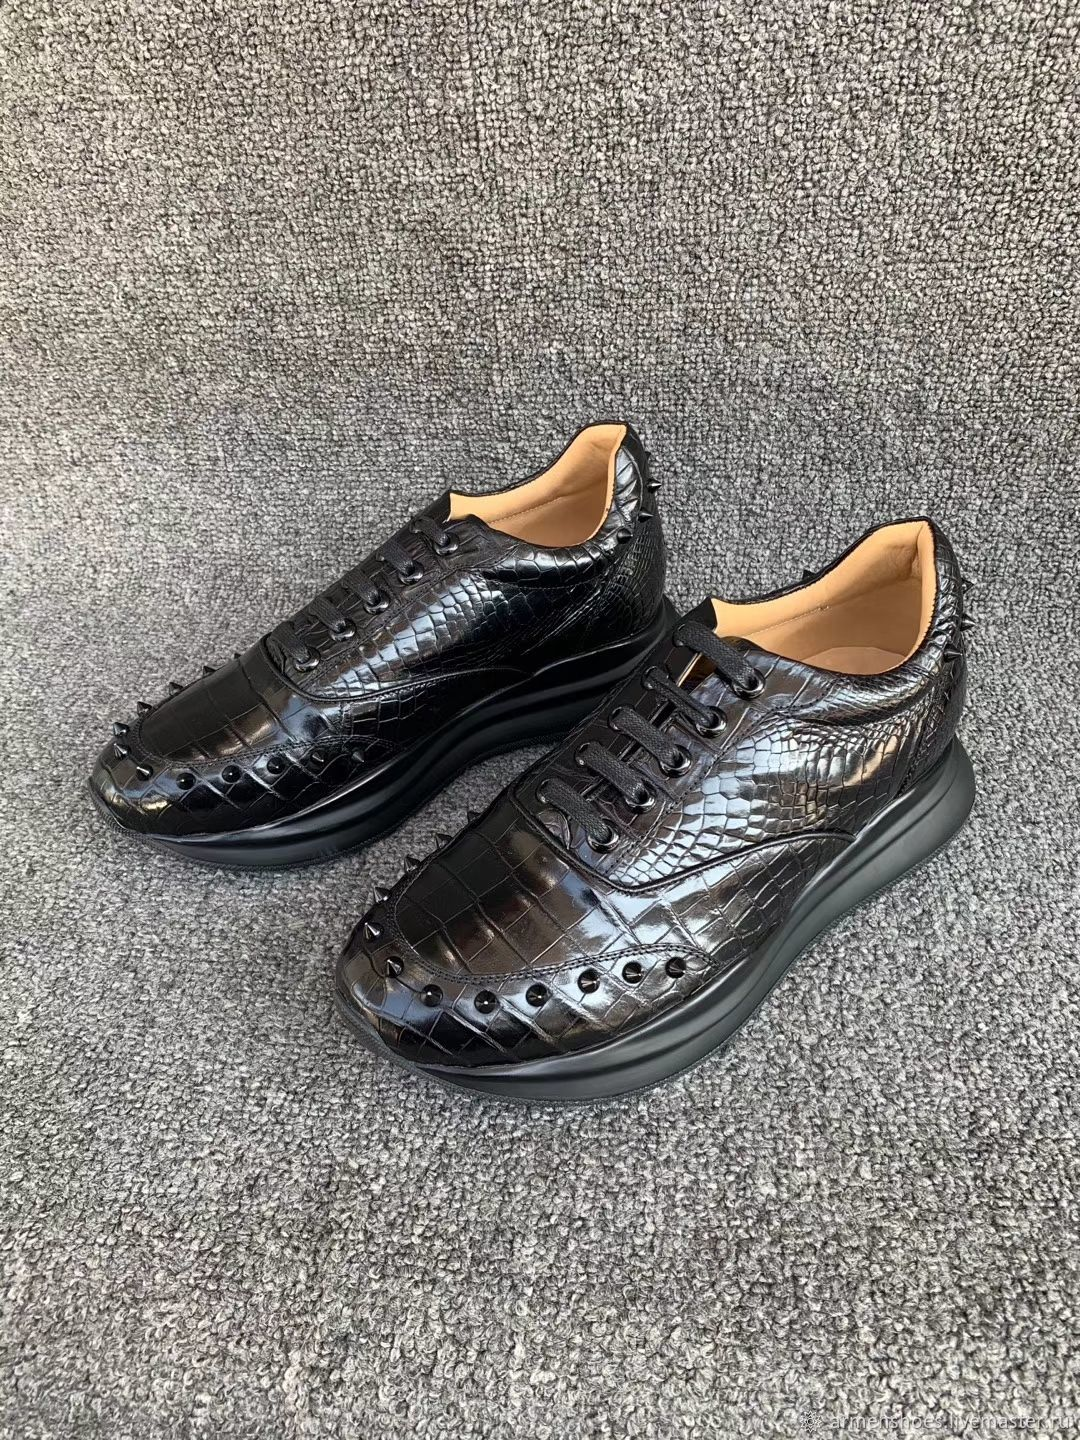 Women's sneakers, made of genuine crocodile leather, in black!, Sneakers, Tosno,  Фото №1